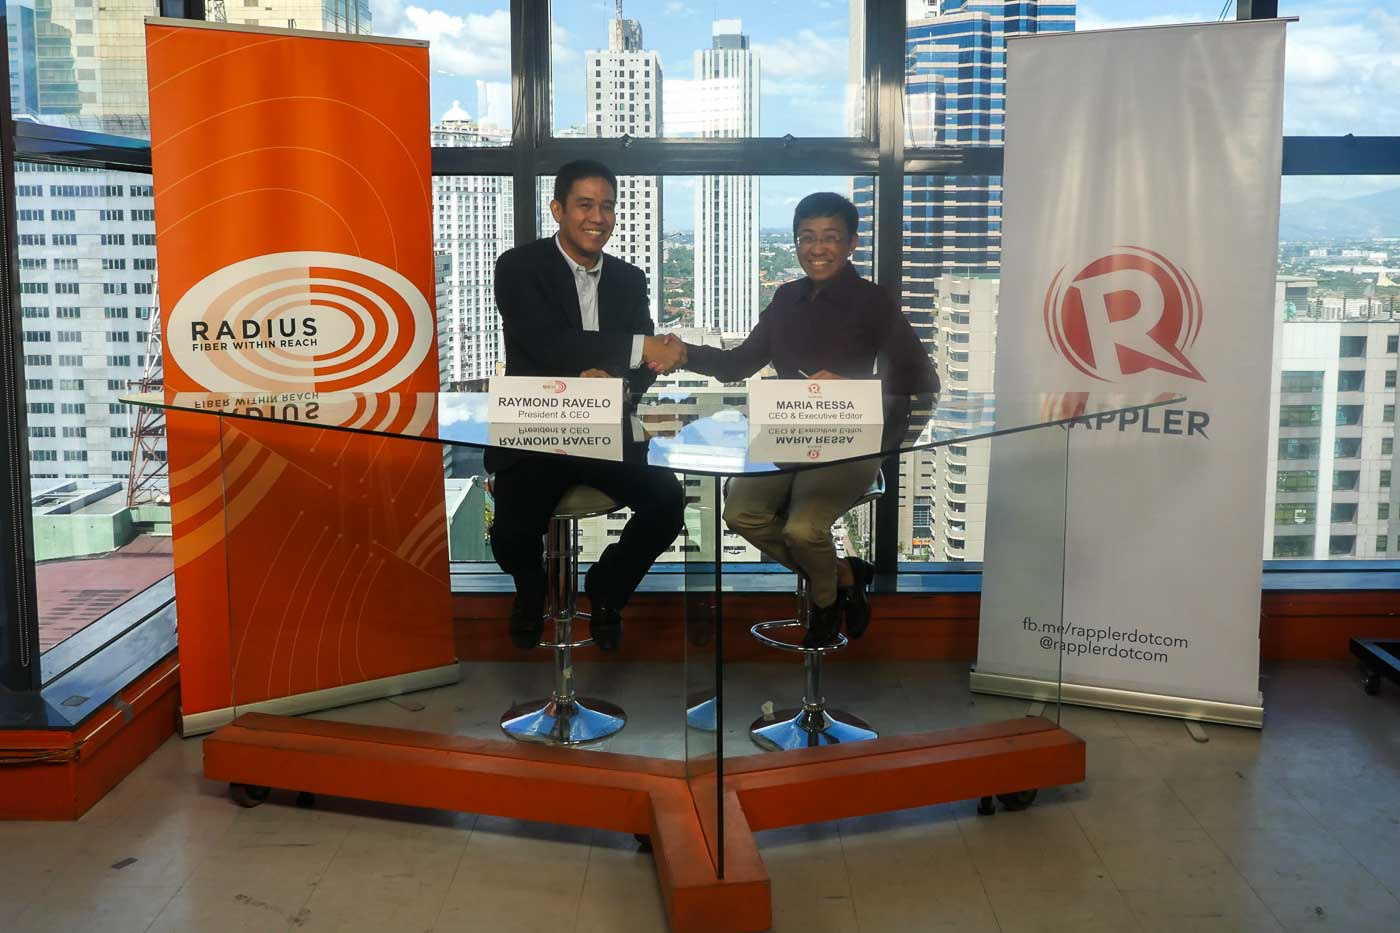 Radius Powers Rappler 2016 Elections Coverage